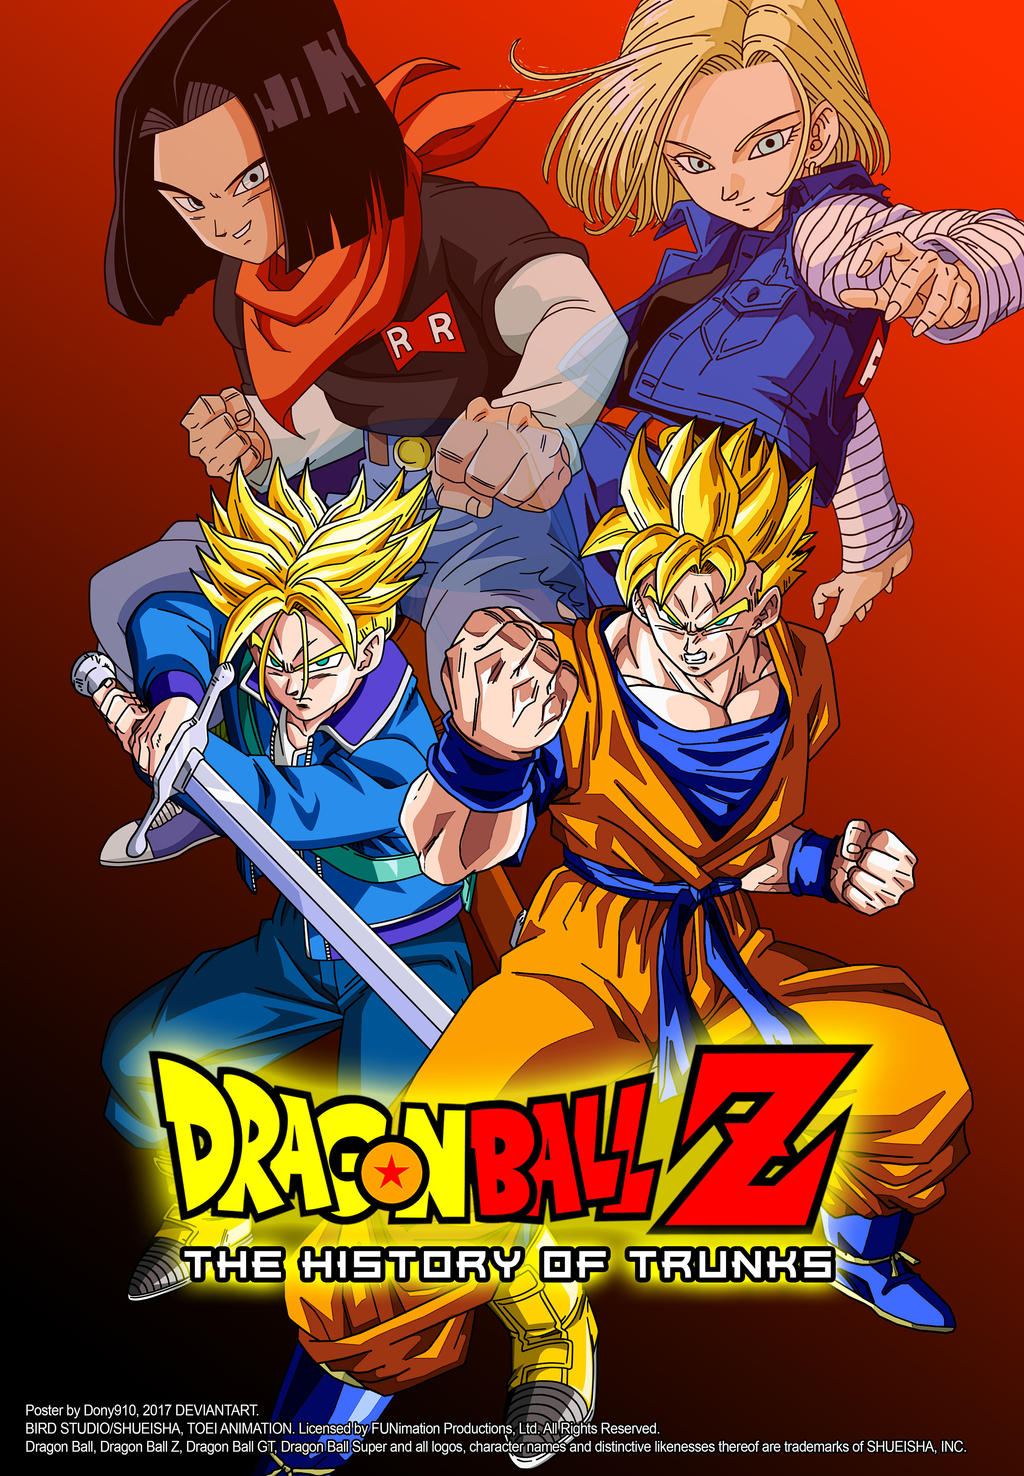 poster the history of trunks by dony910 on deviantart